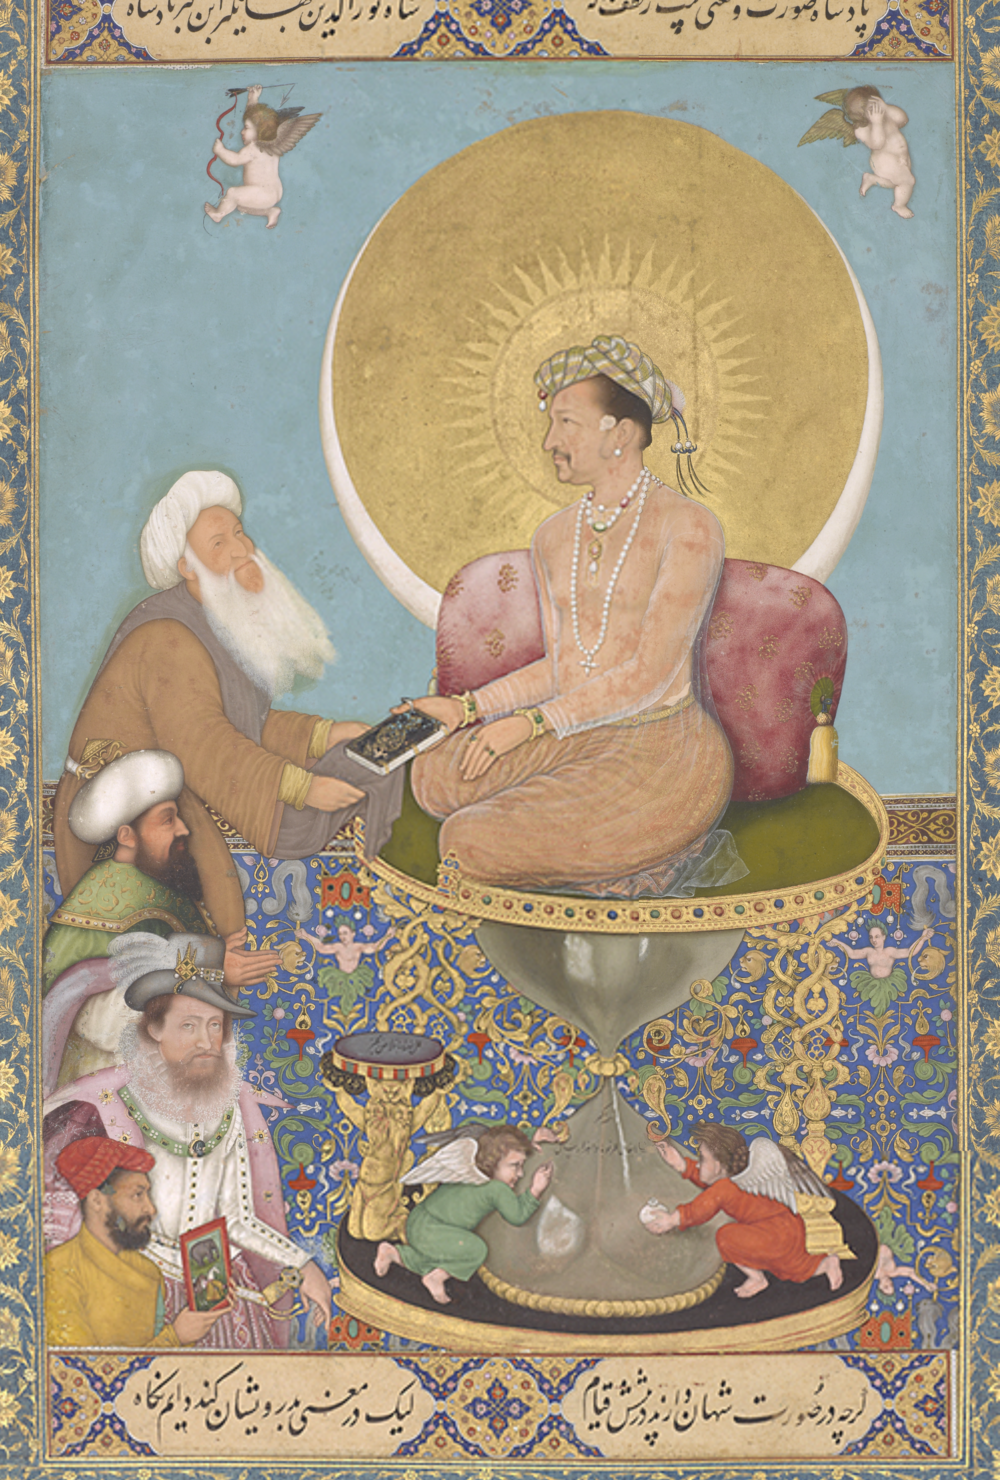 Jahangir Preferring a Sufi Shaykh to Kings From the St. Petersburg Album Signed by Bichitr Freer Gallery of Art F1942.15 Appears: Thinking, New Directions